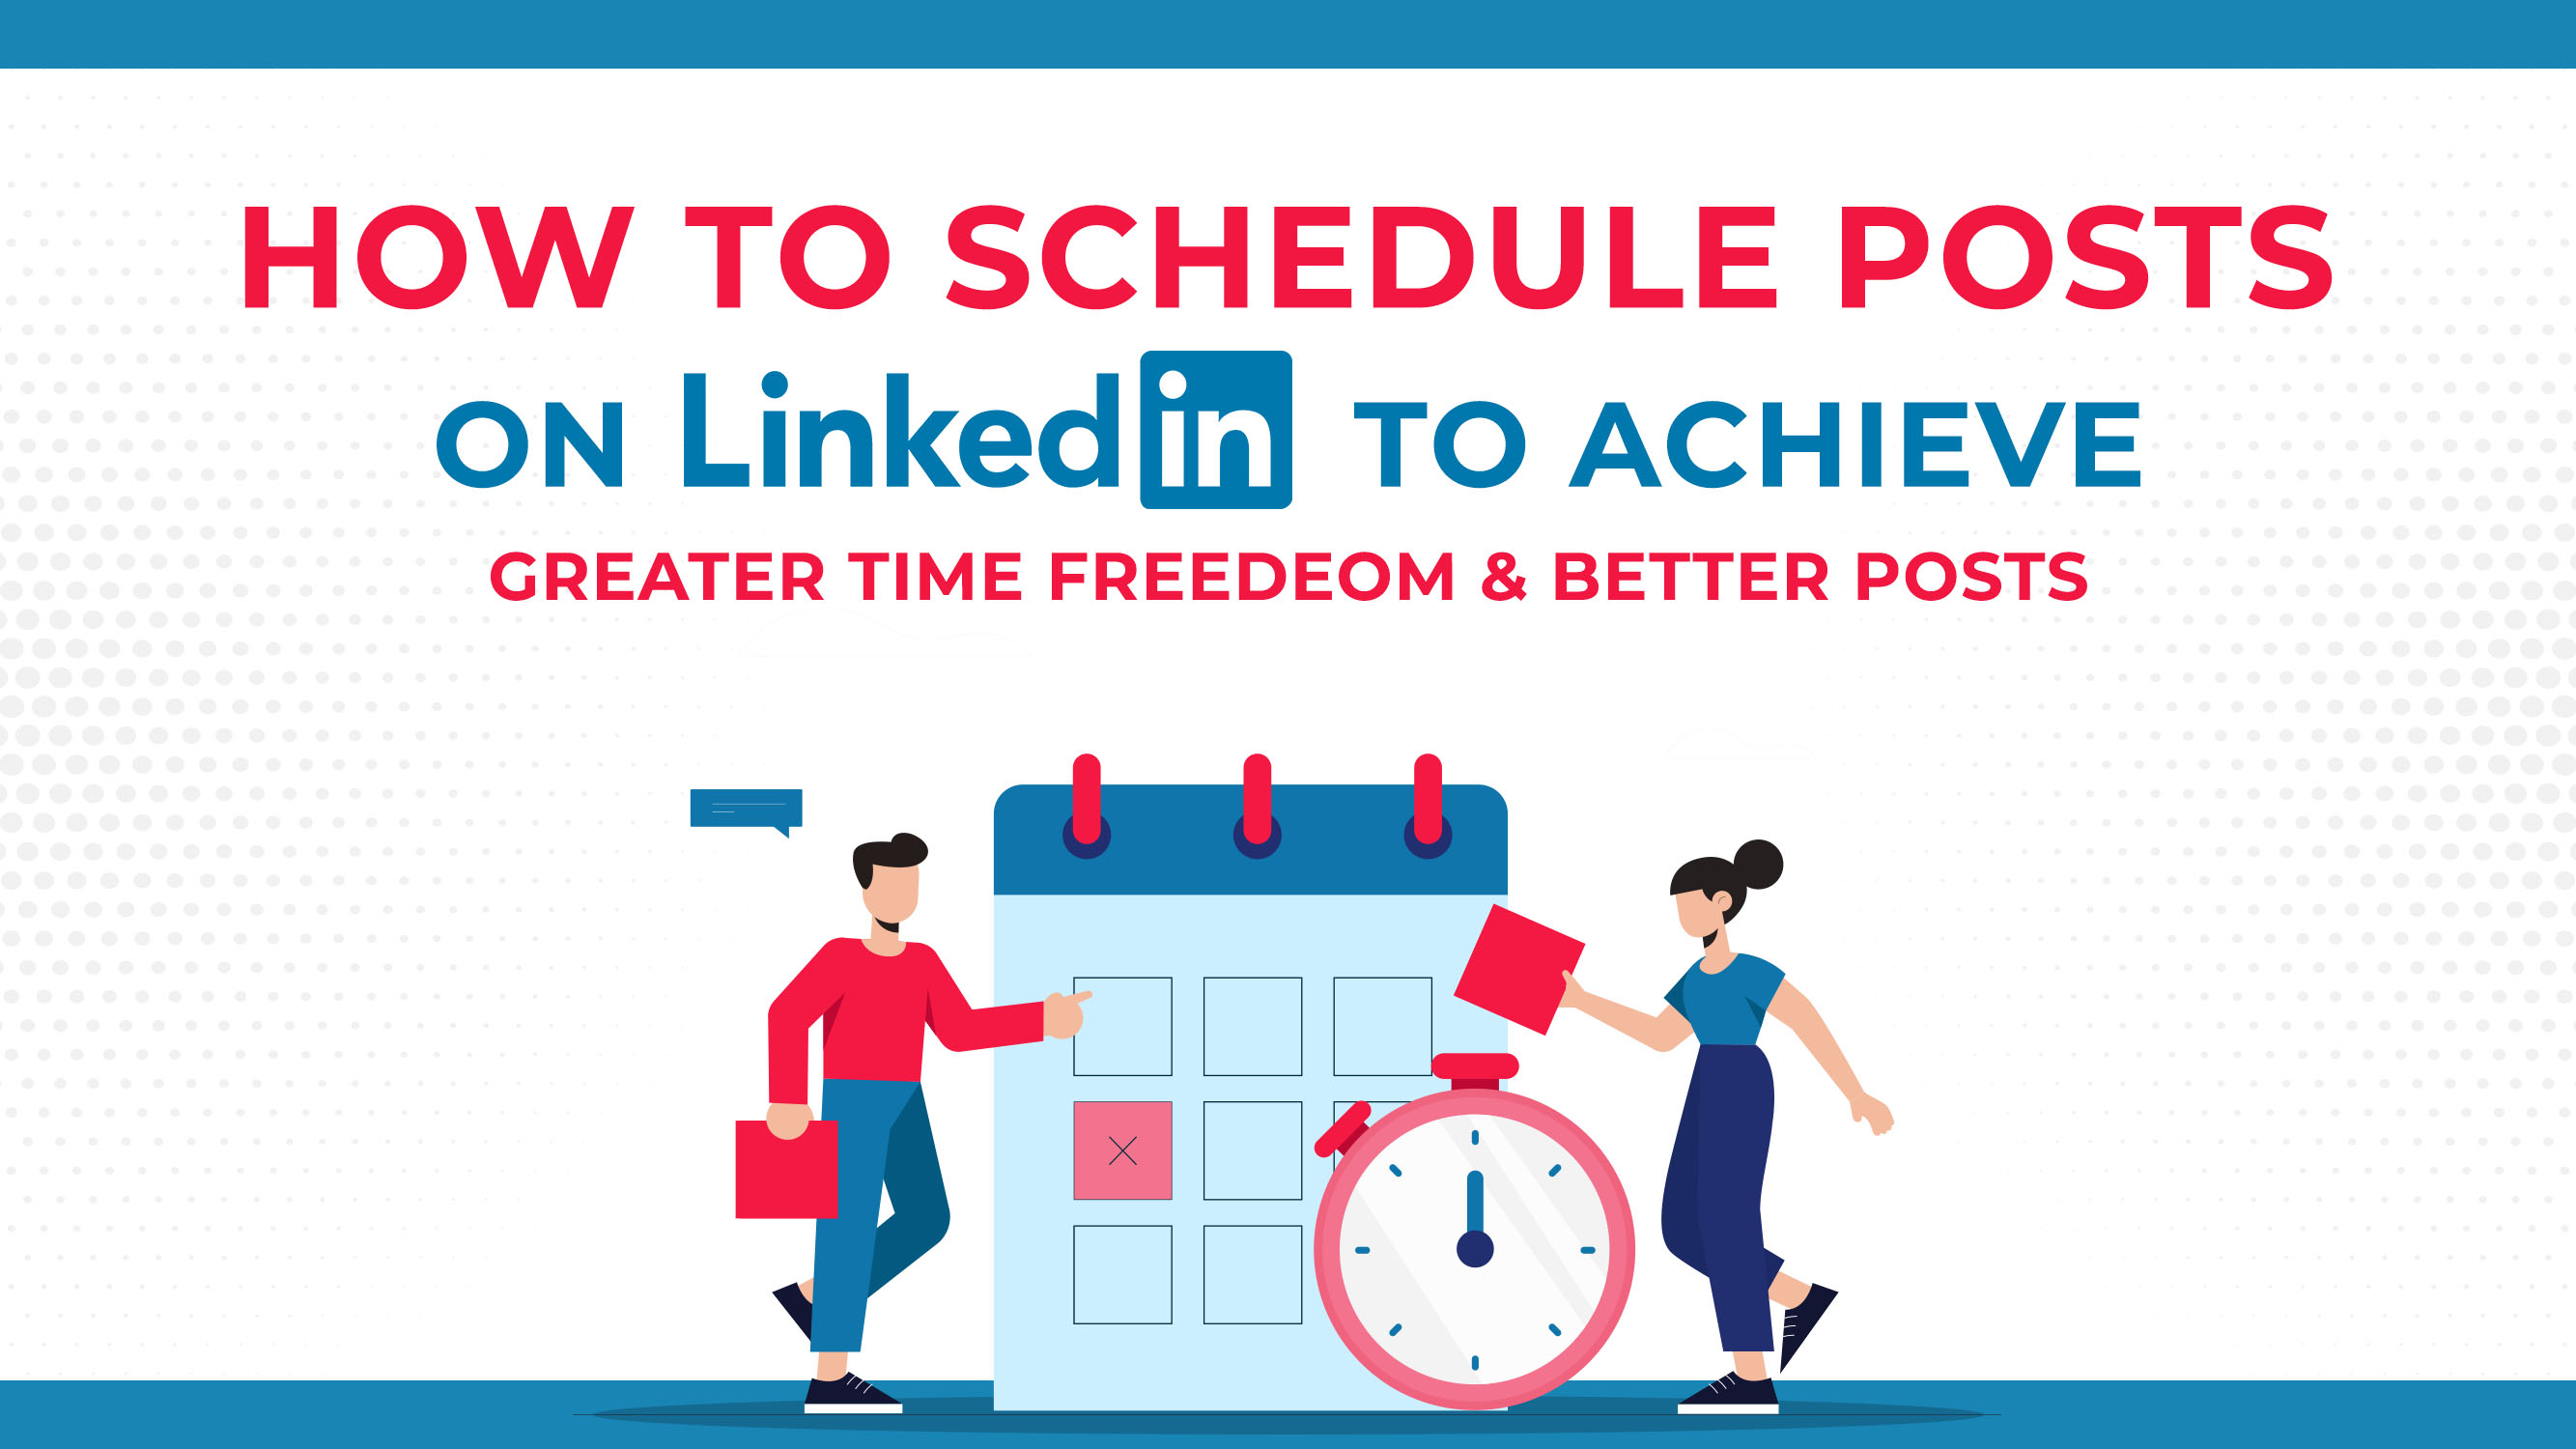 How To Schedule Posts On LinkedIn To Achieve Greater Time Freedom & Better Posts